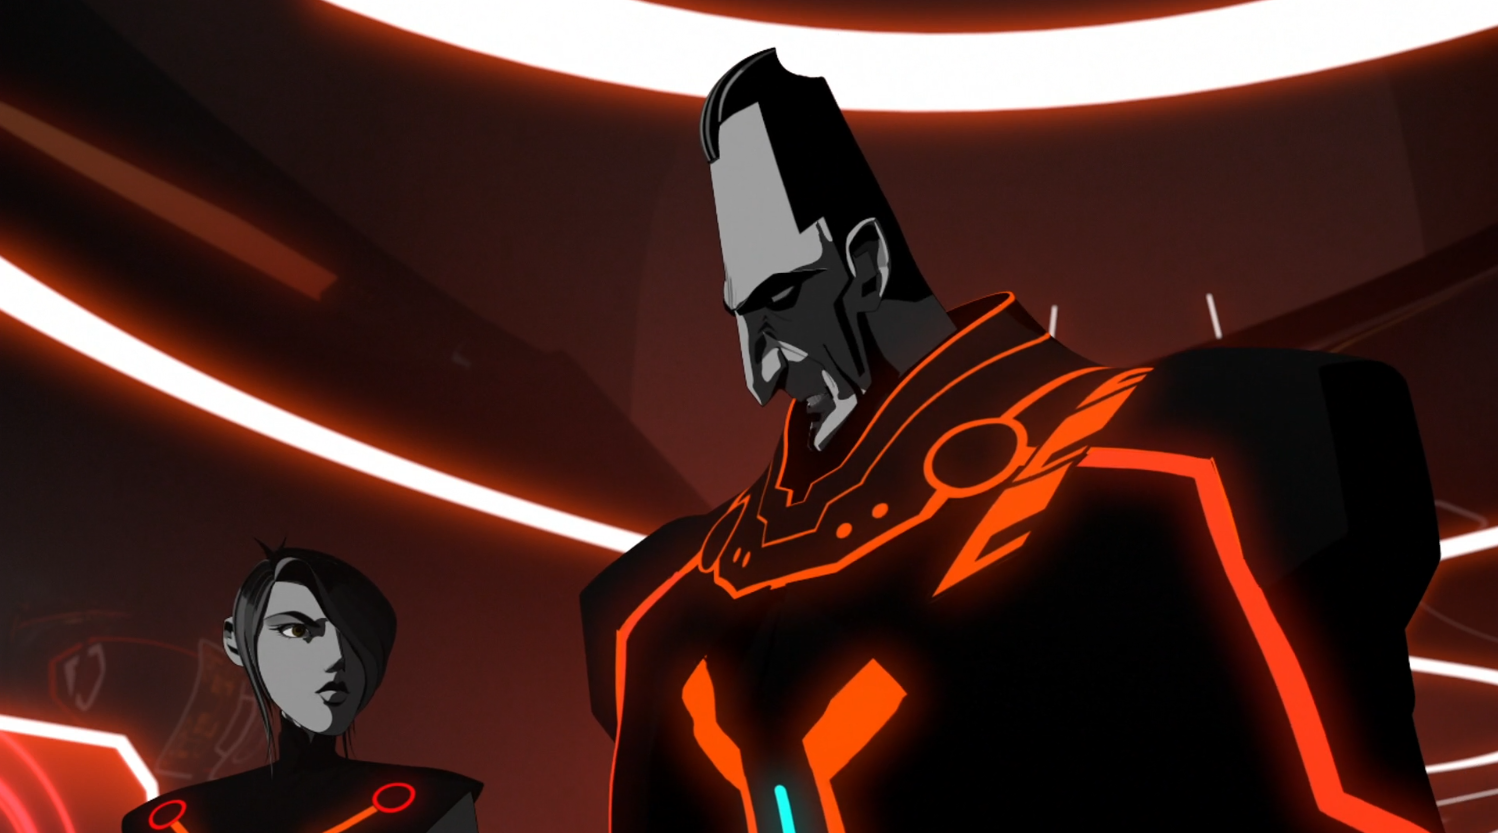 General Tesler and Paige - Terminal - Terminal - Tron: Uprising